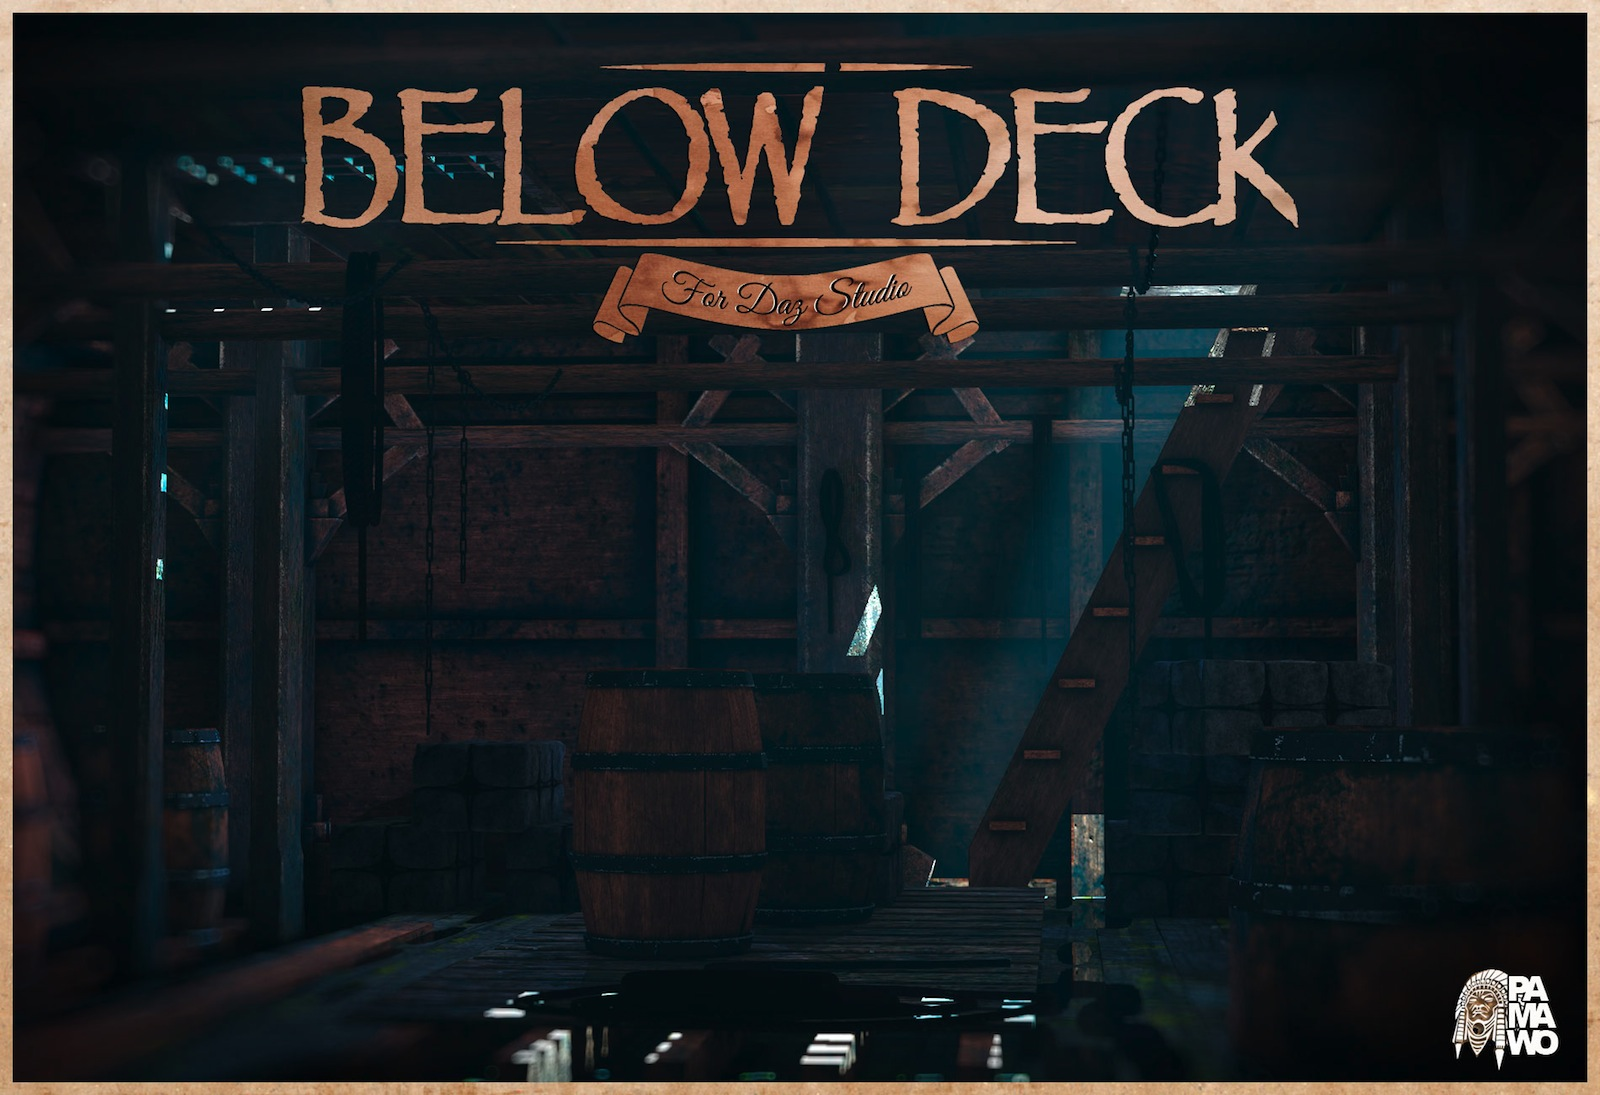 Below Deck for DS